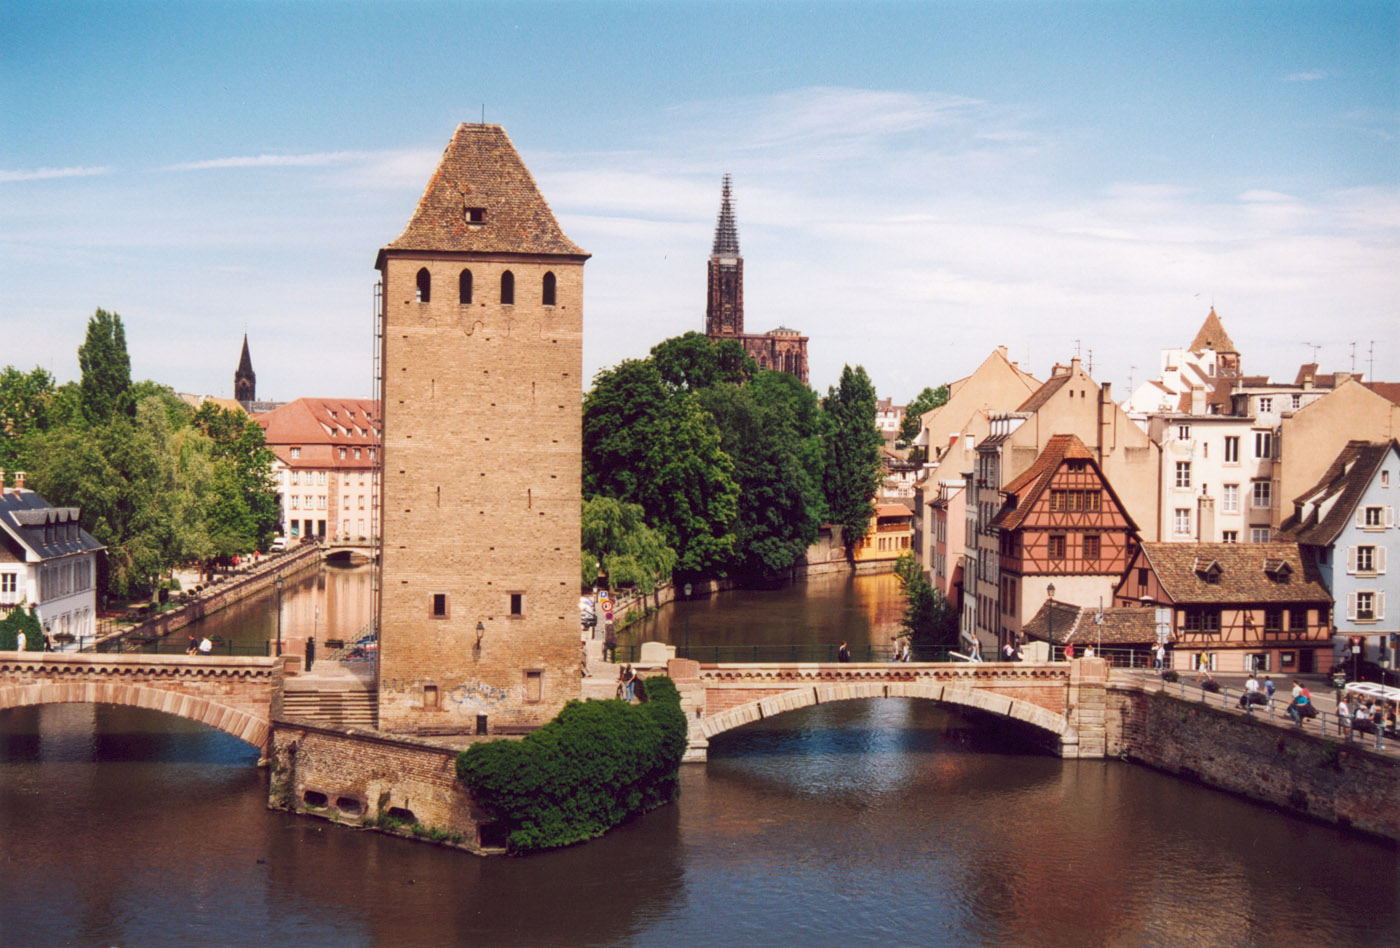 http://upload.wikimedia.org/wikipedia/commons/1/1d/Strasbourg_petite_france.jpg